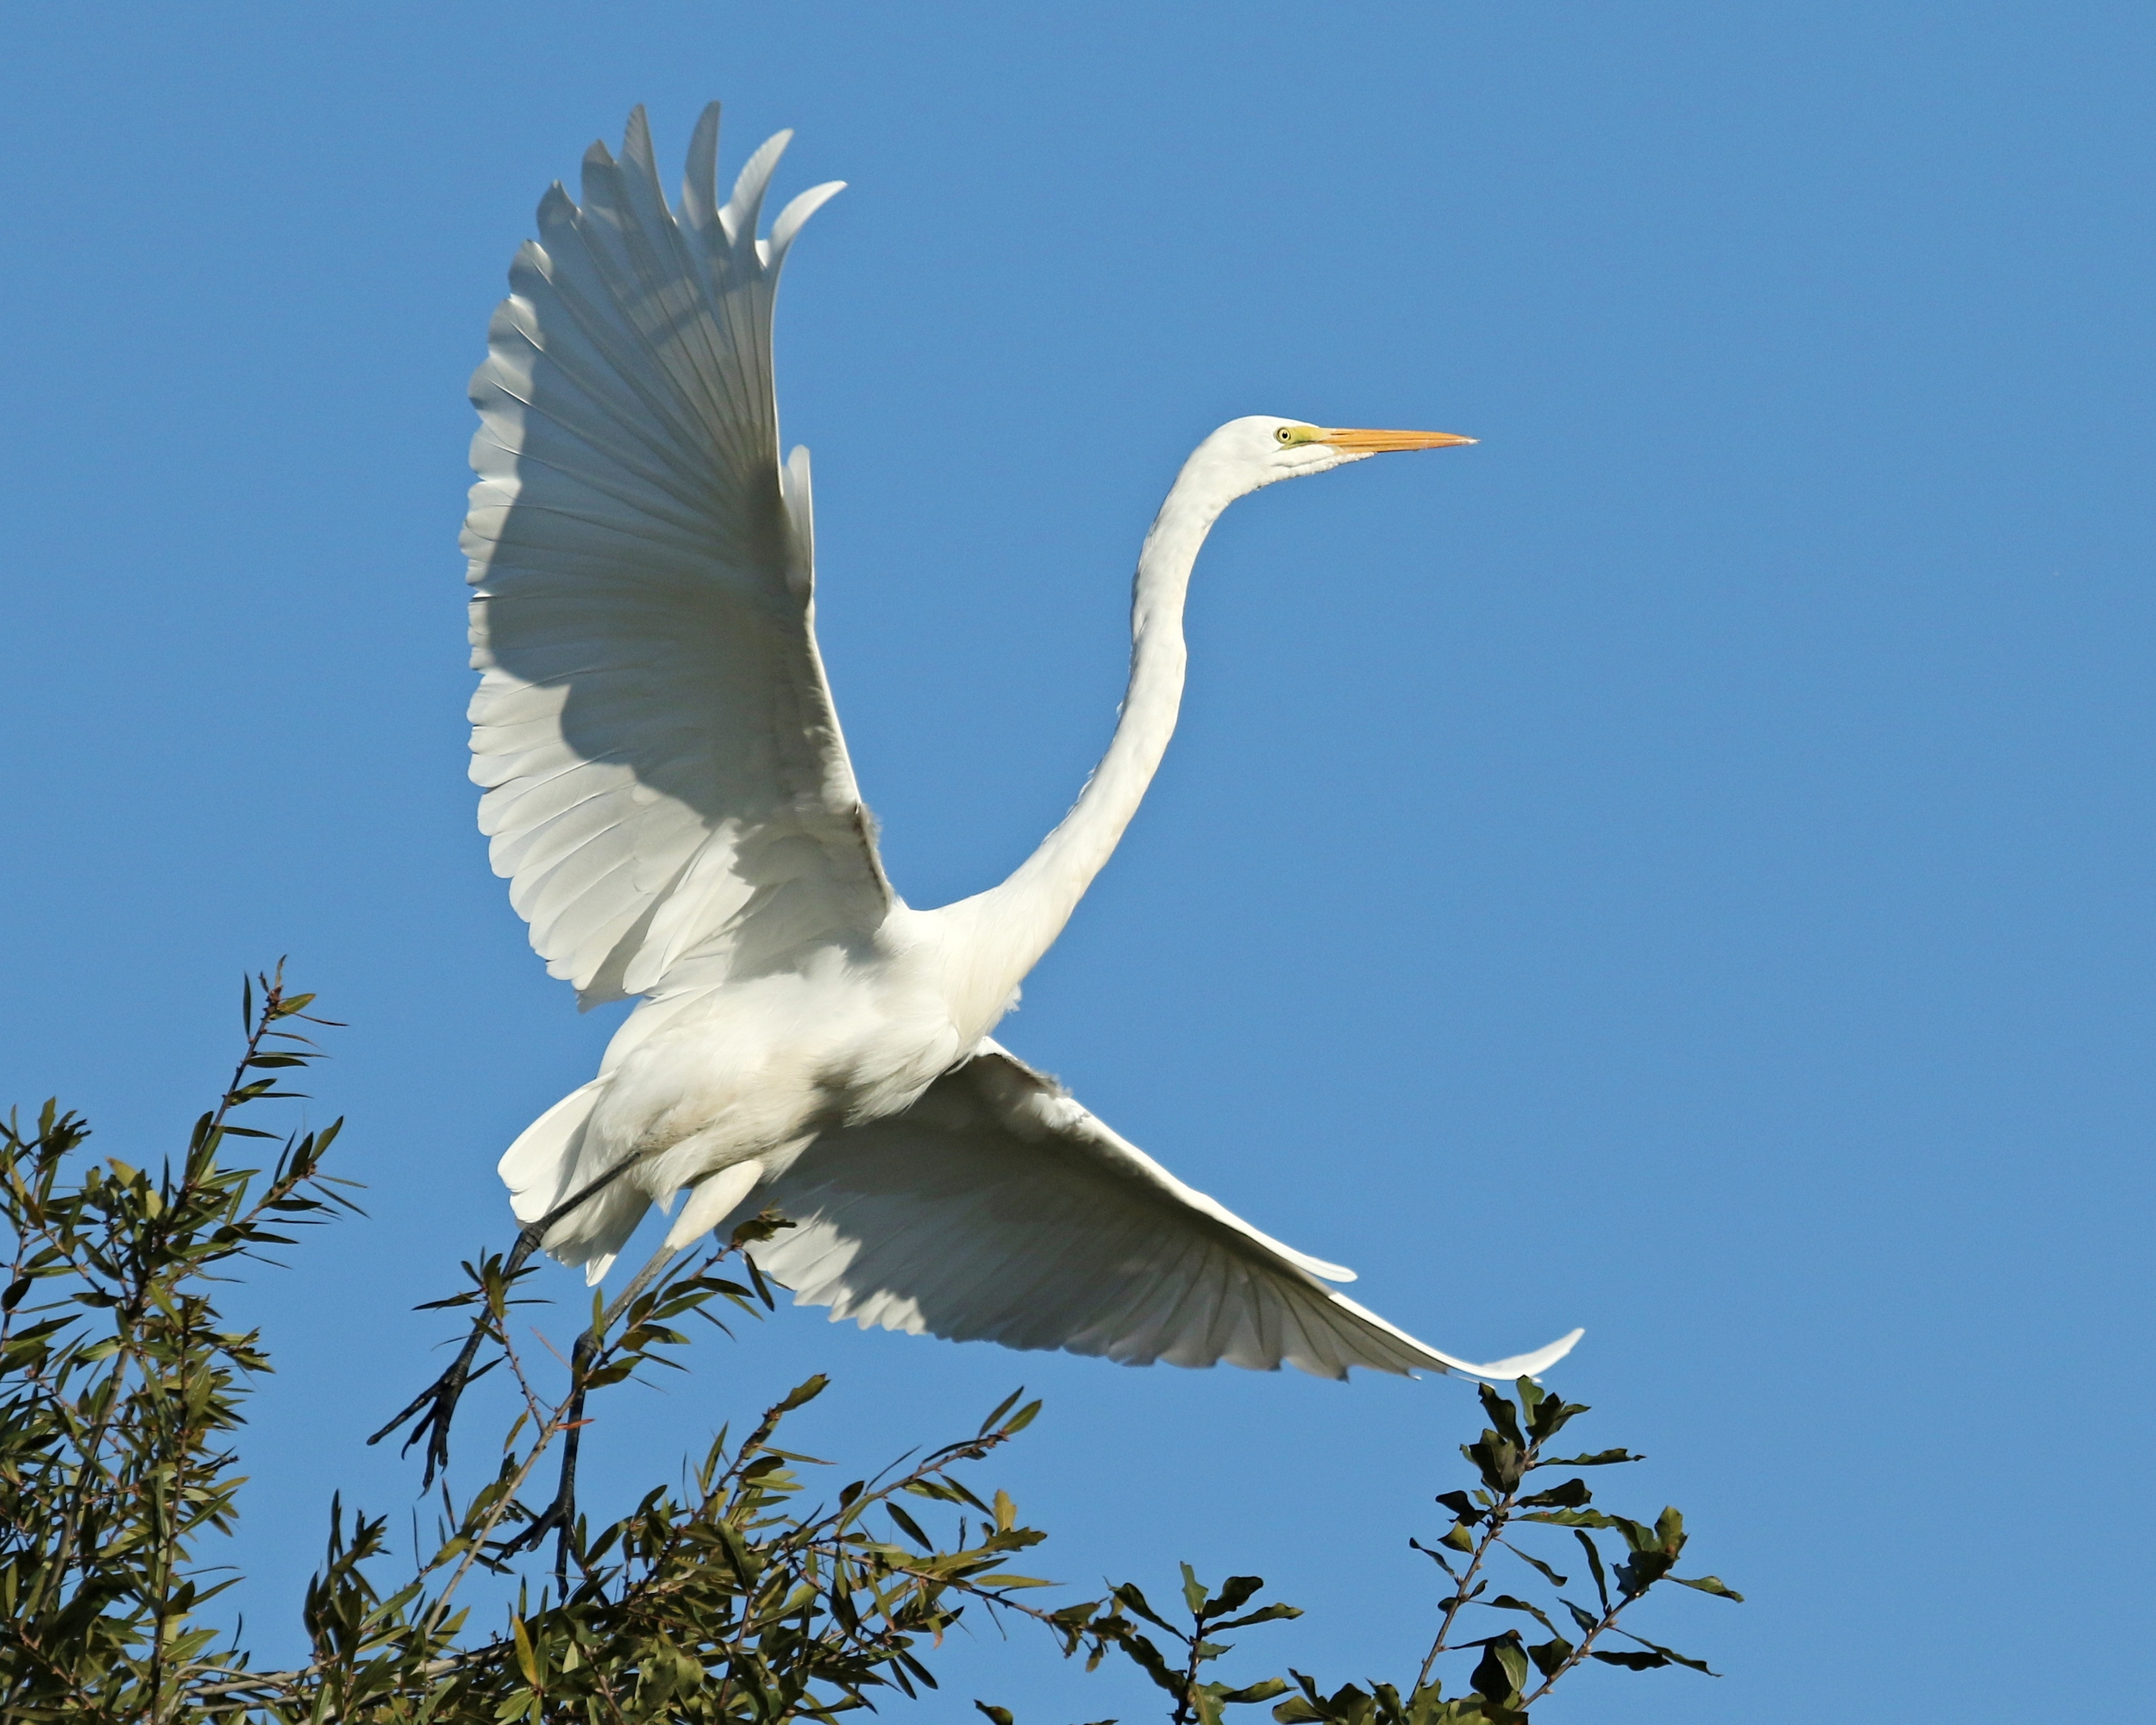 With angel like wings the Egret gently rises..